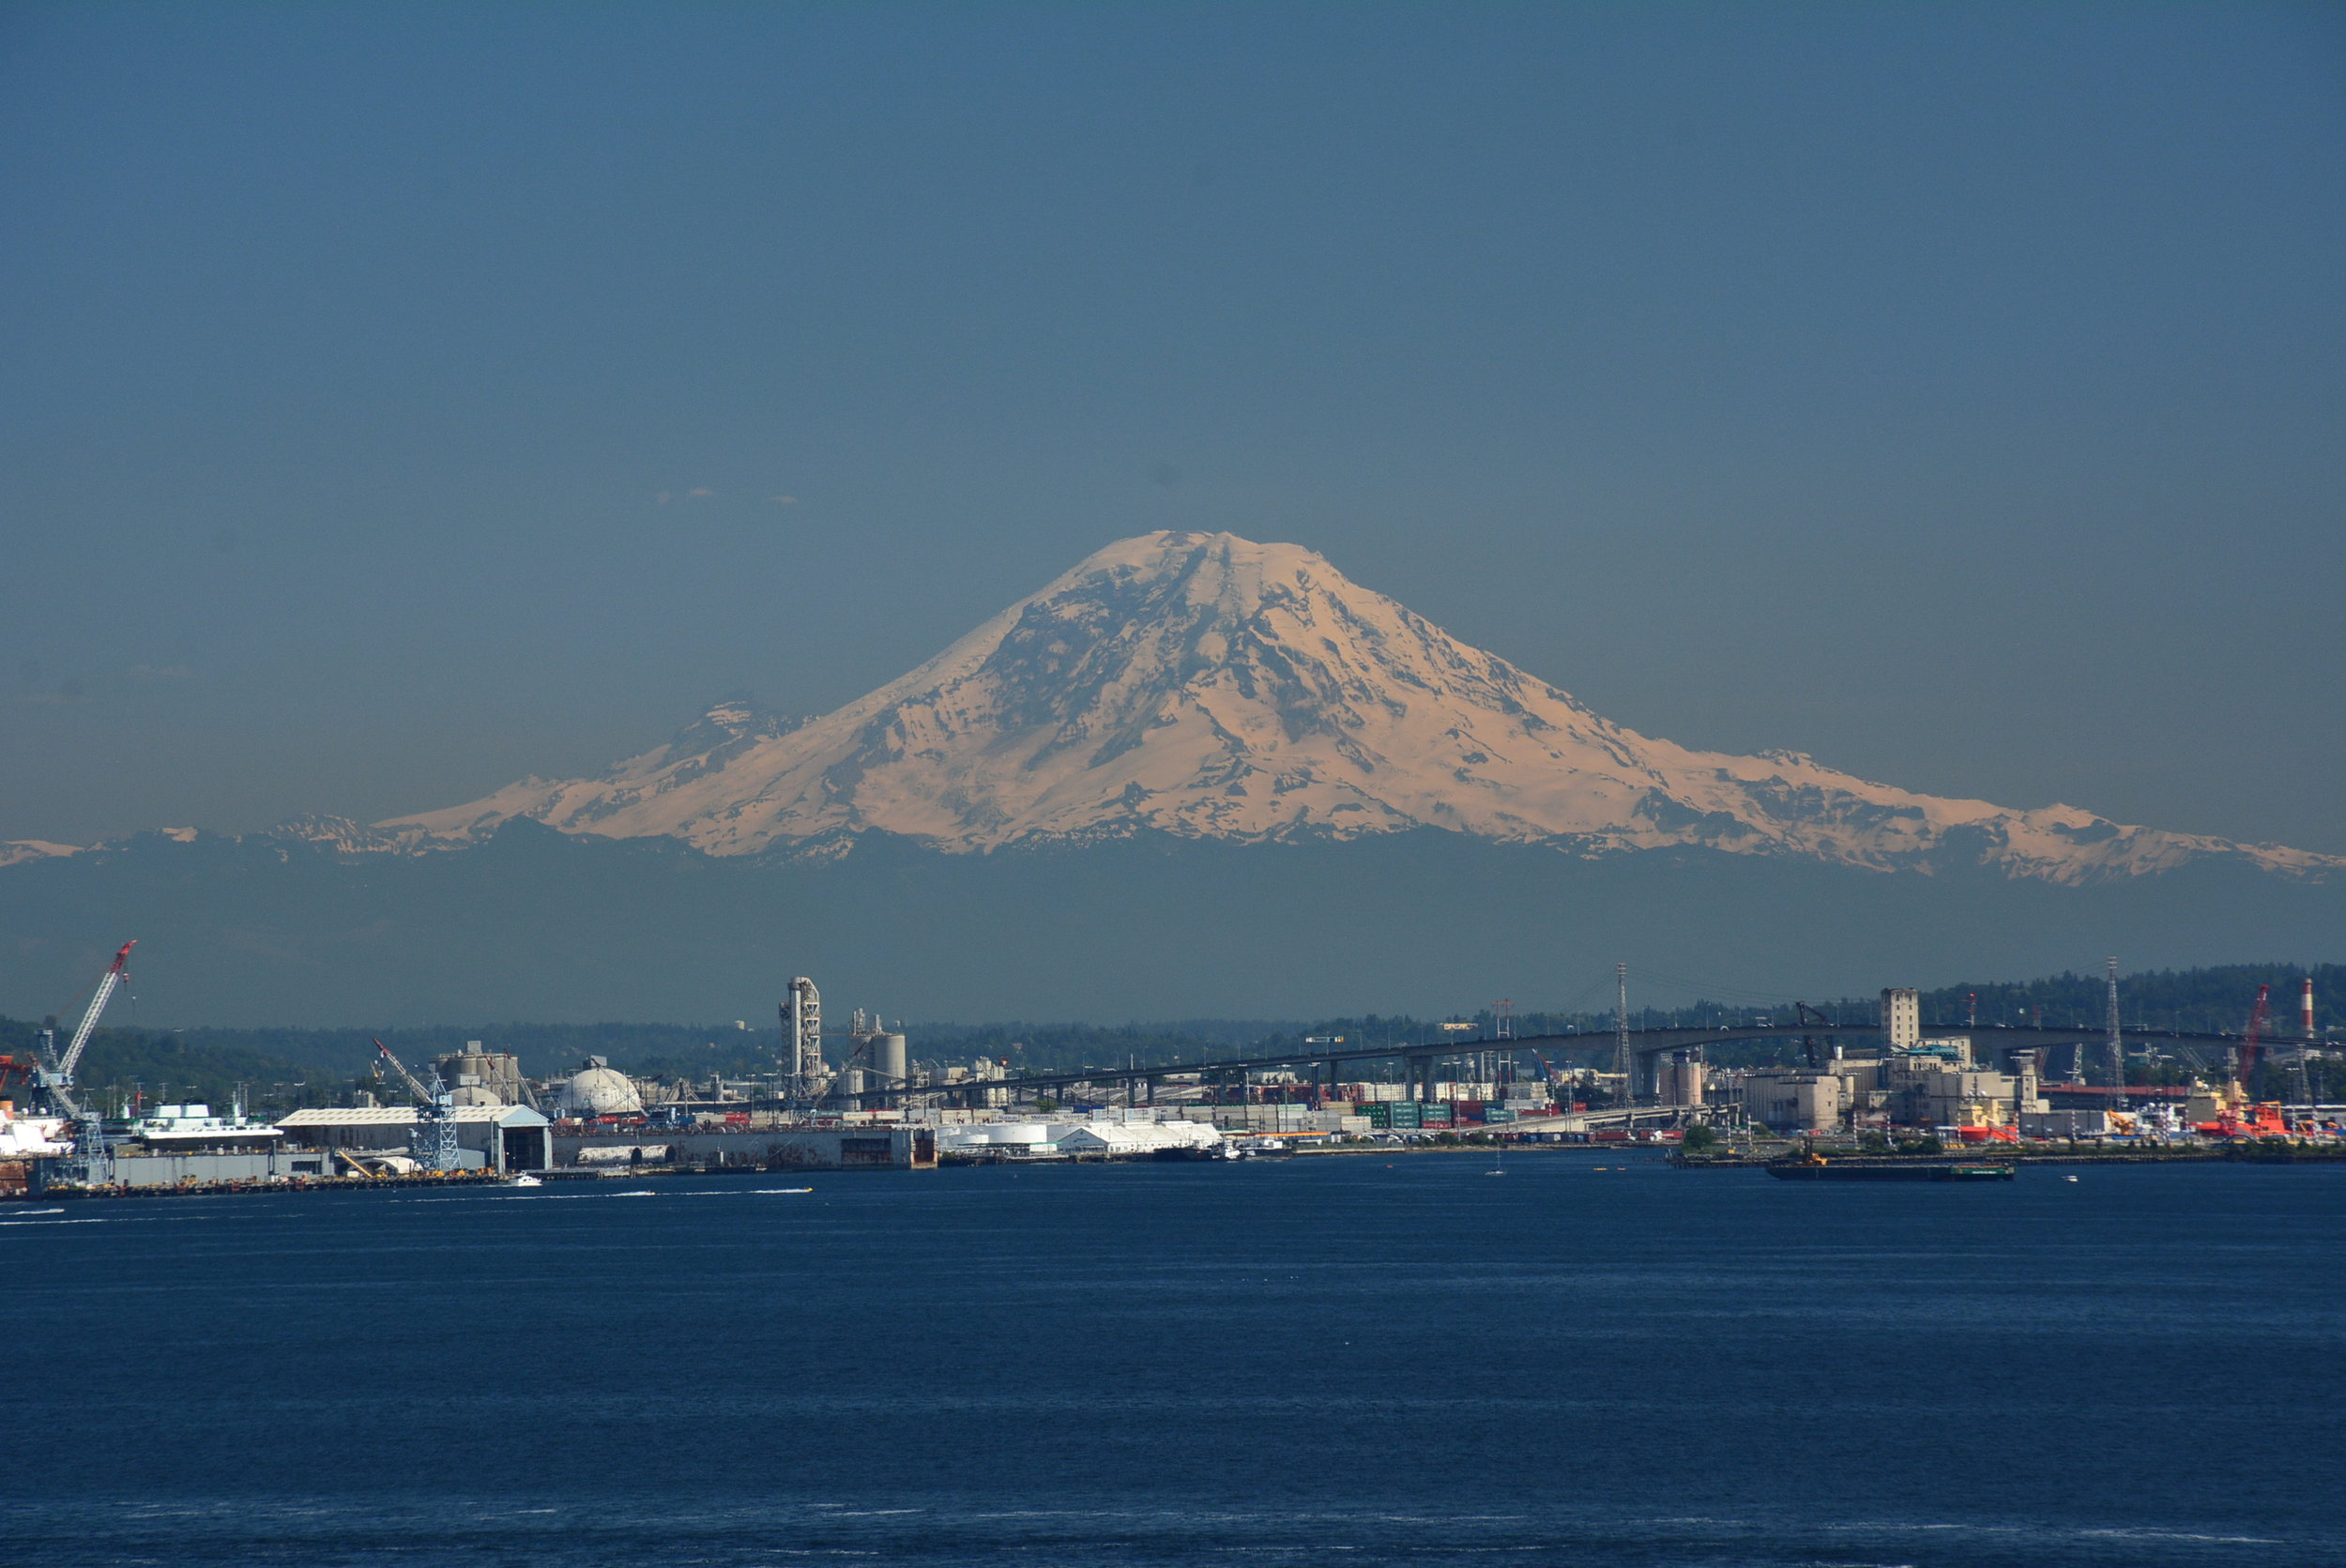 Departing Seattle on the Ruby Princess